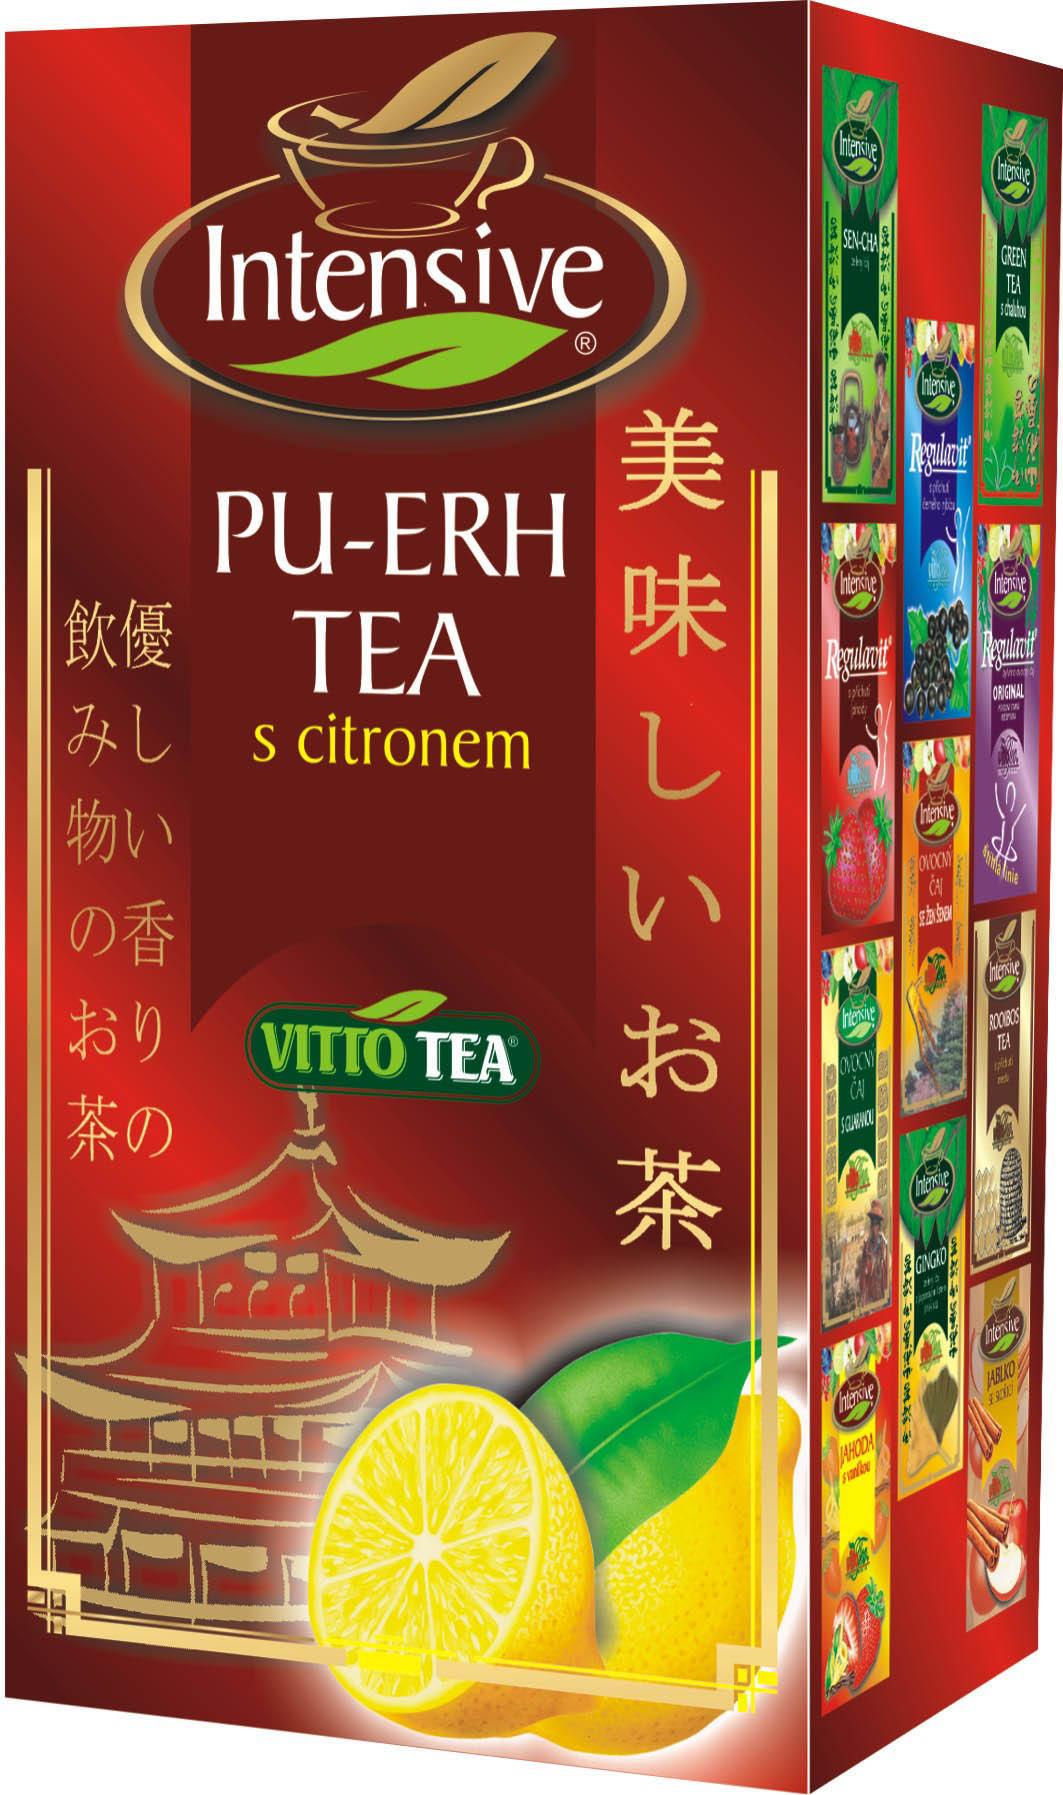 Vitto Intens PU-ERH citron 30g